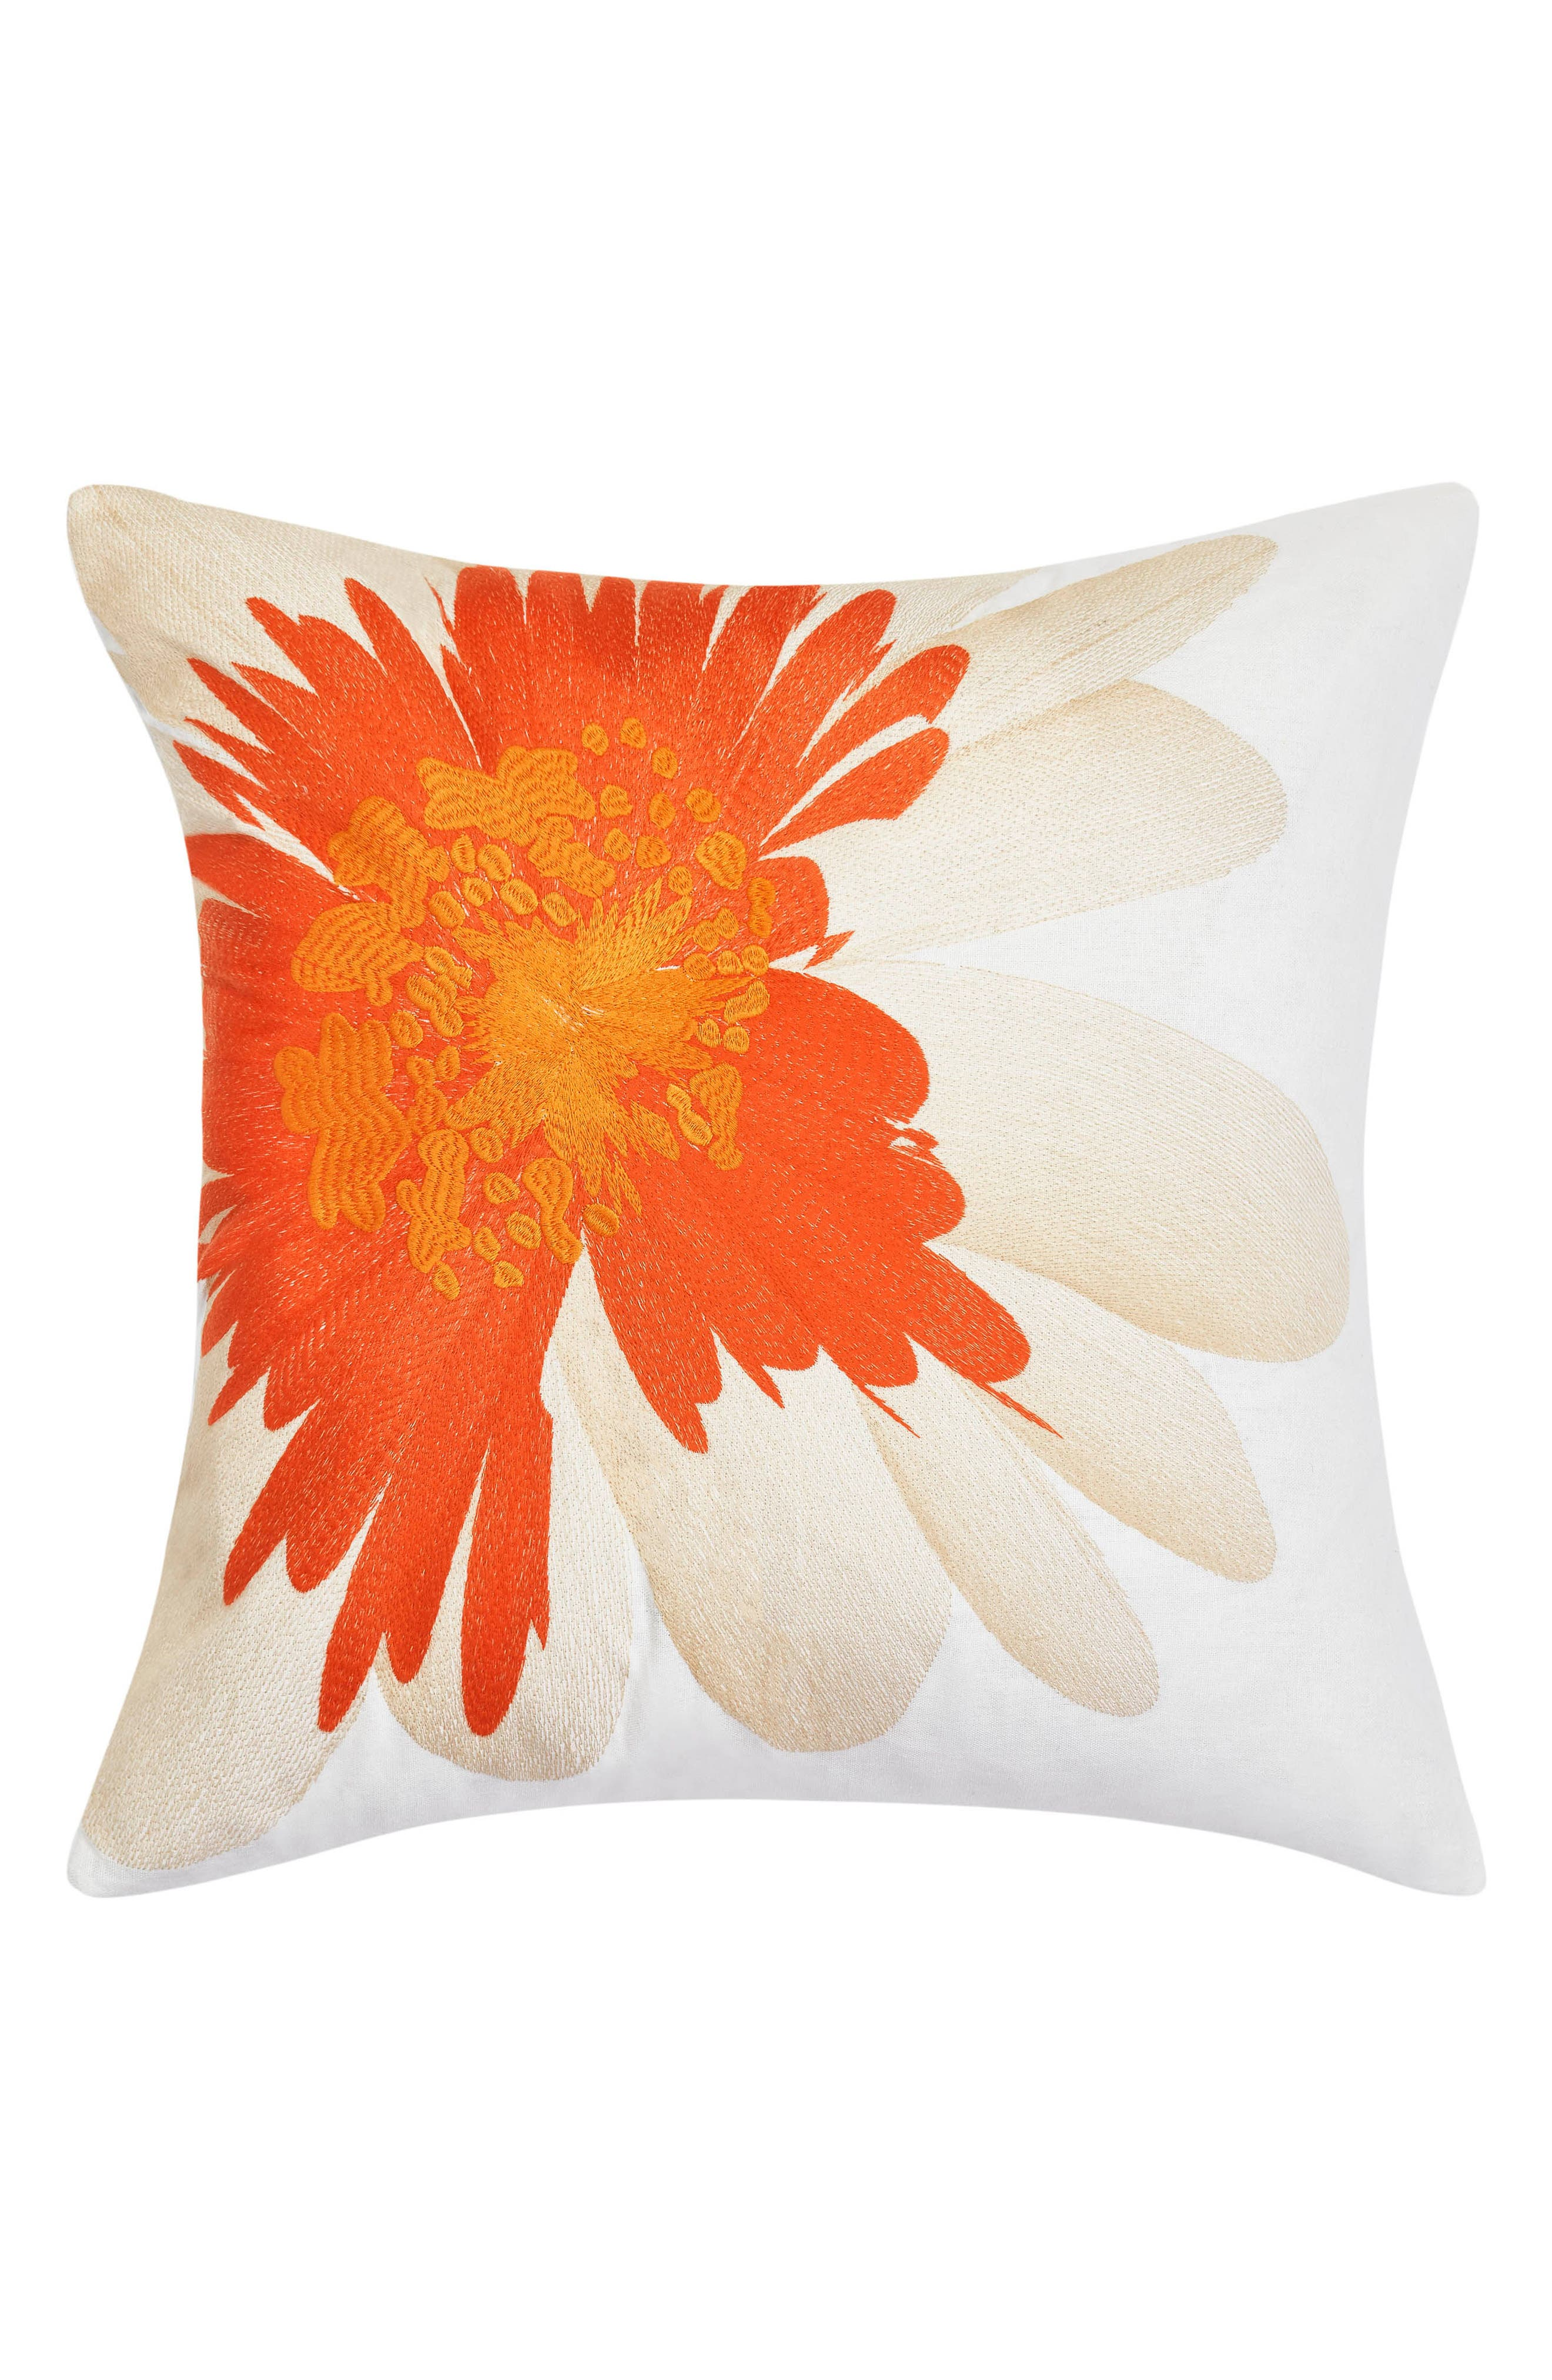 Palm Desert Accent Pillow,                             Main thumbnail 1, color,                             Medium Orange